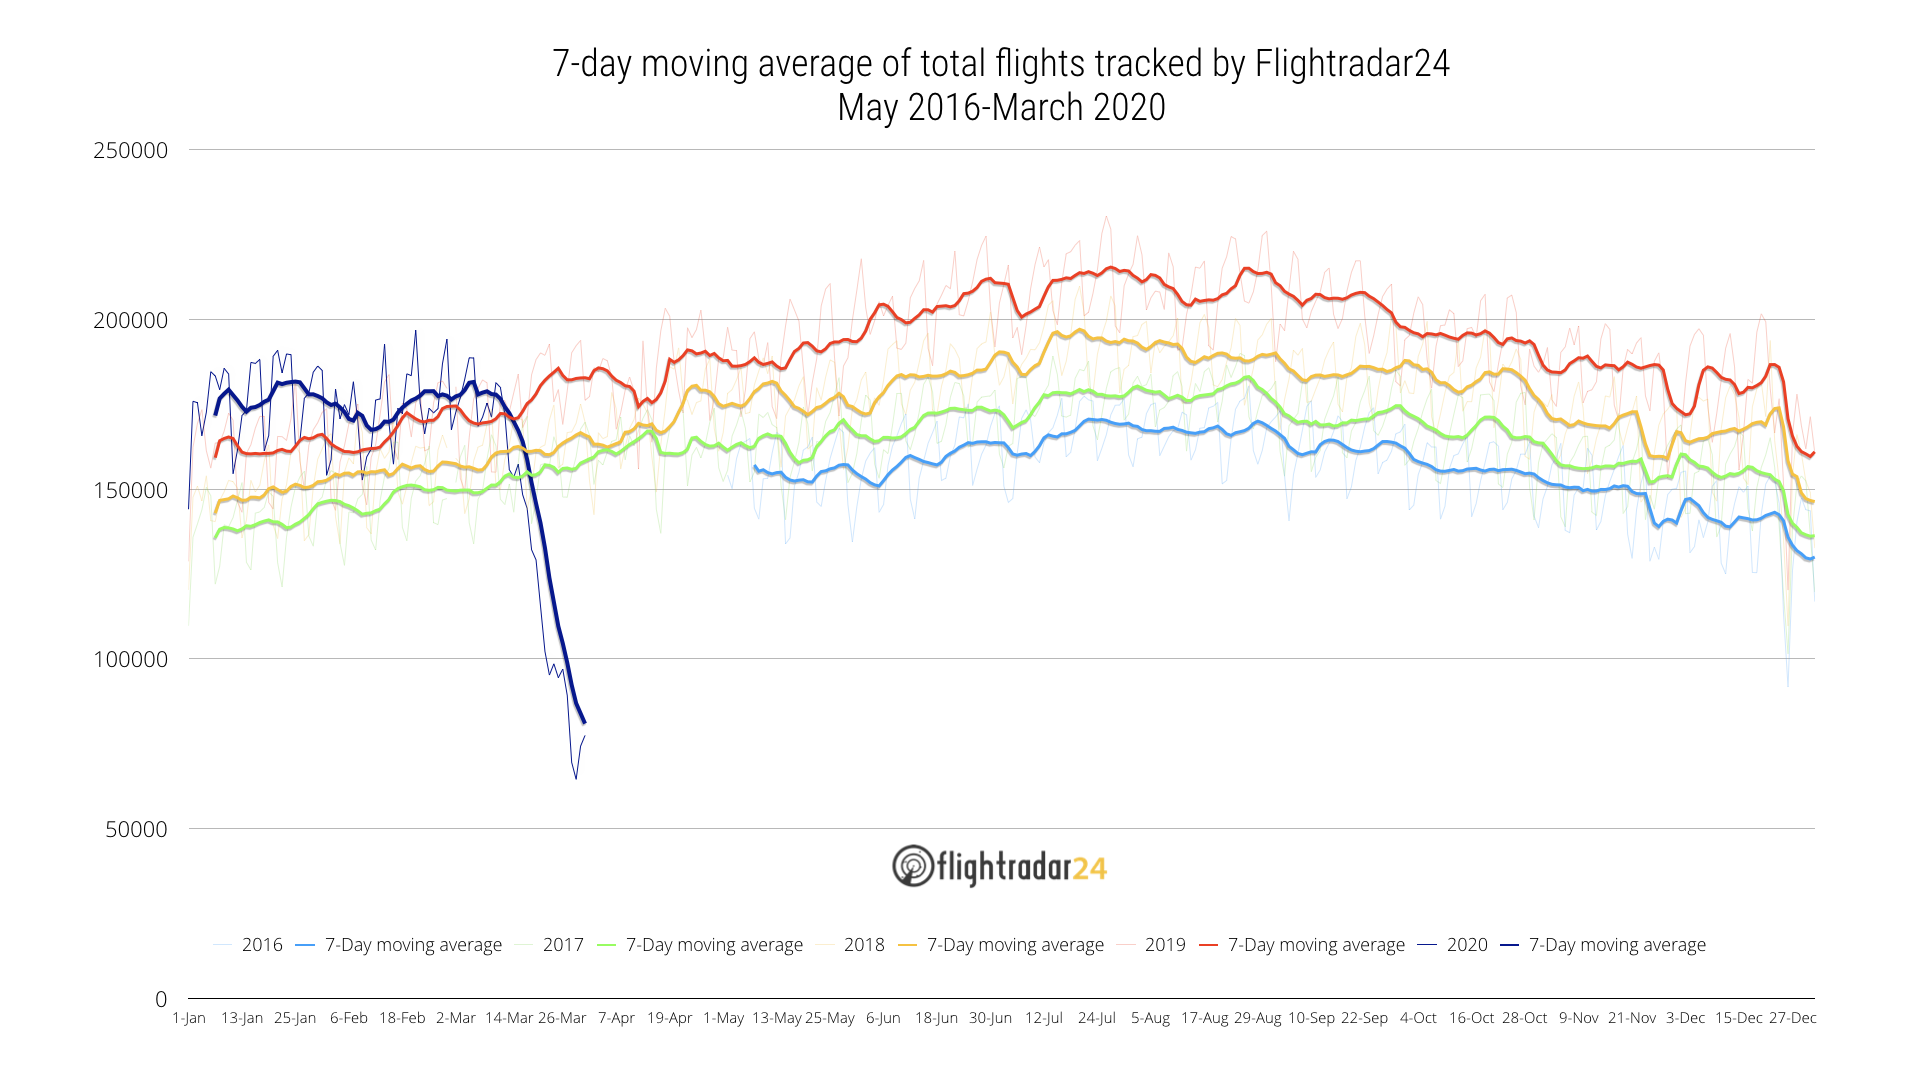 Total flights tracked since May 2016